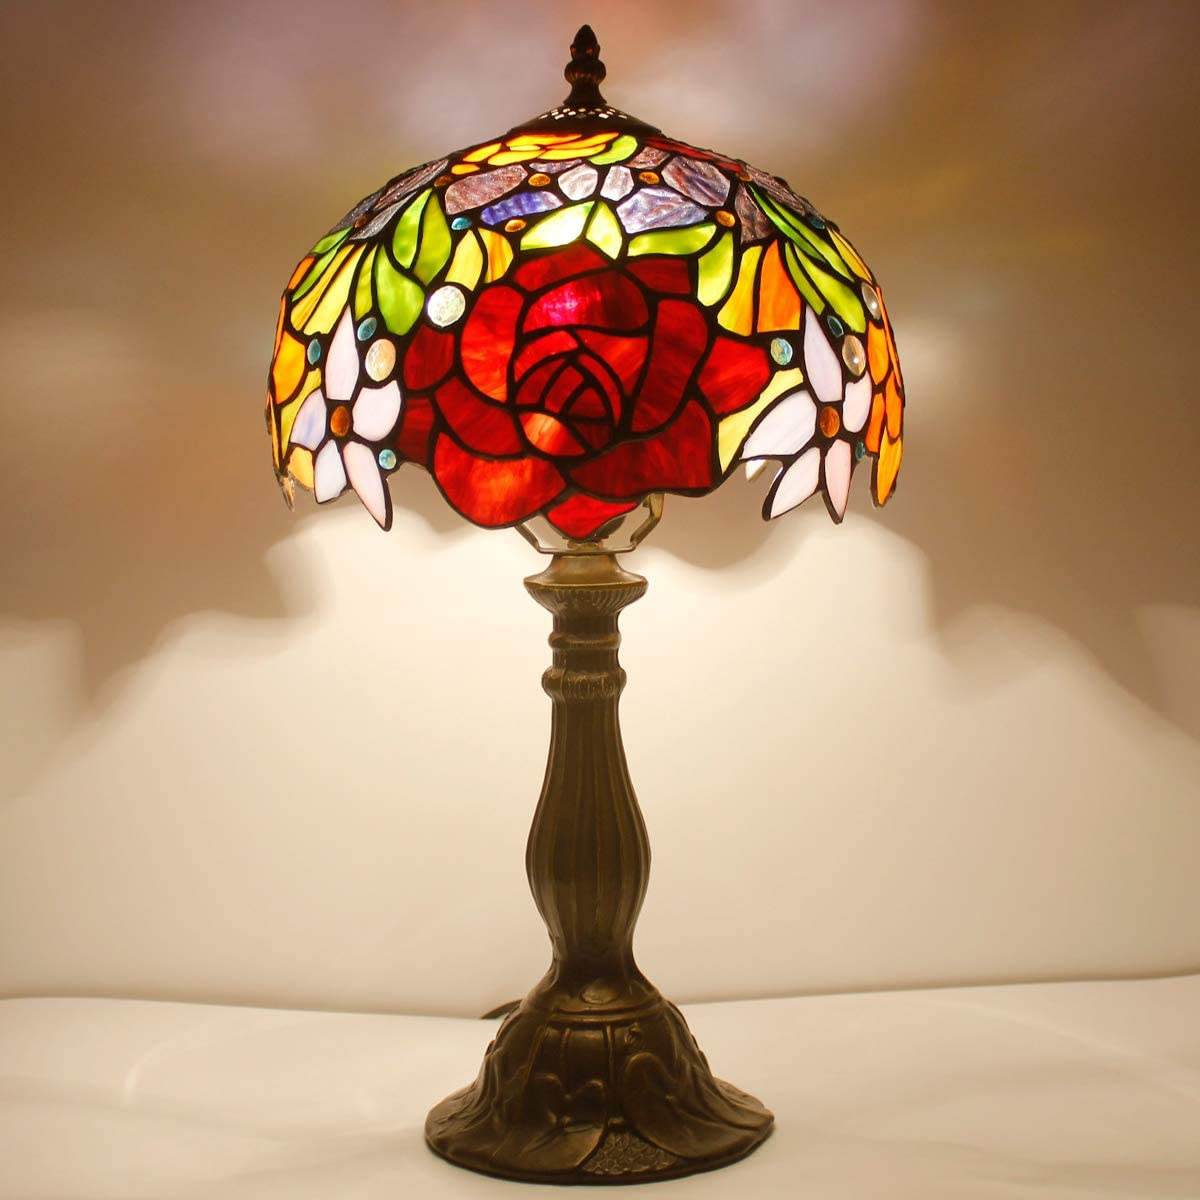 Stained Glass Lamp | Wayfair.co.uk